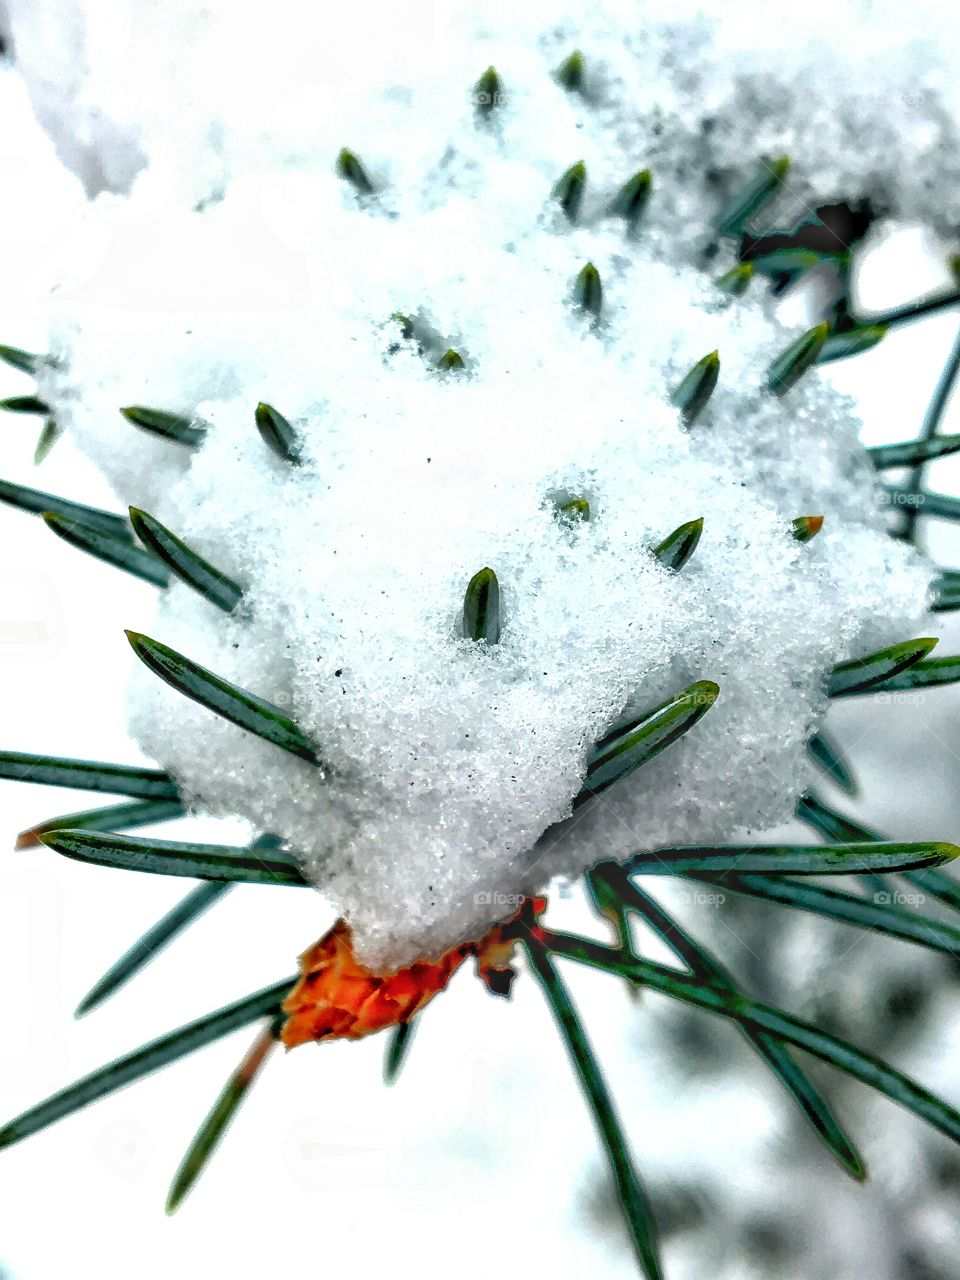 Fir needles covered with snow